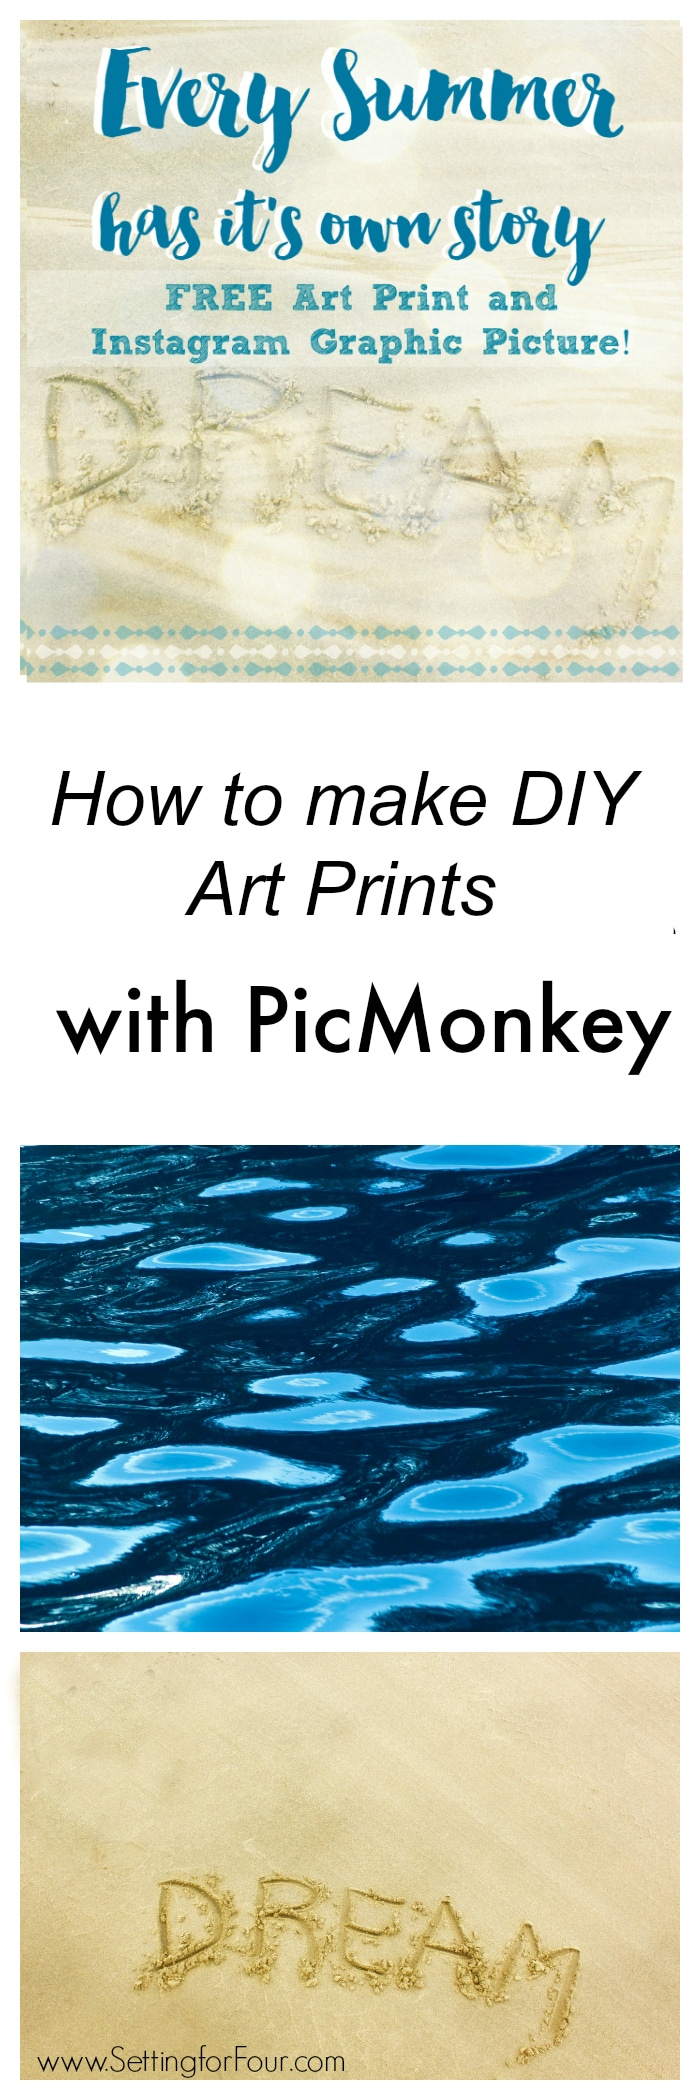 How to use PicMonkey to make DIY art prints easily. Step by Step PicMonkey tutorial included to make this gorgeous Summer art print. Plus I'm giving this away free as a printable!